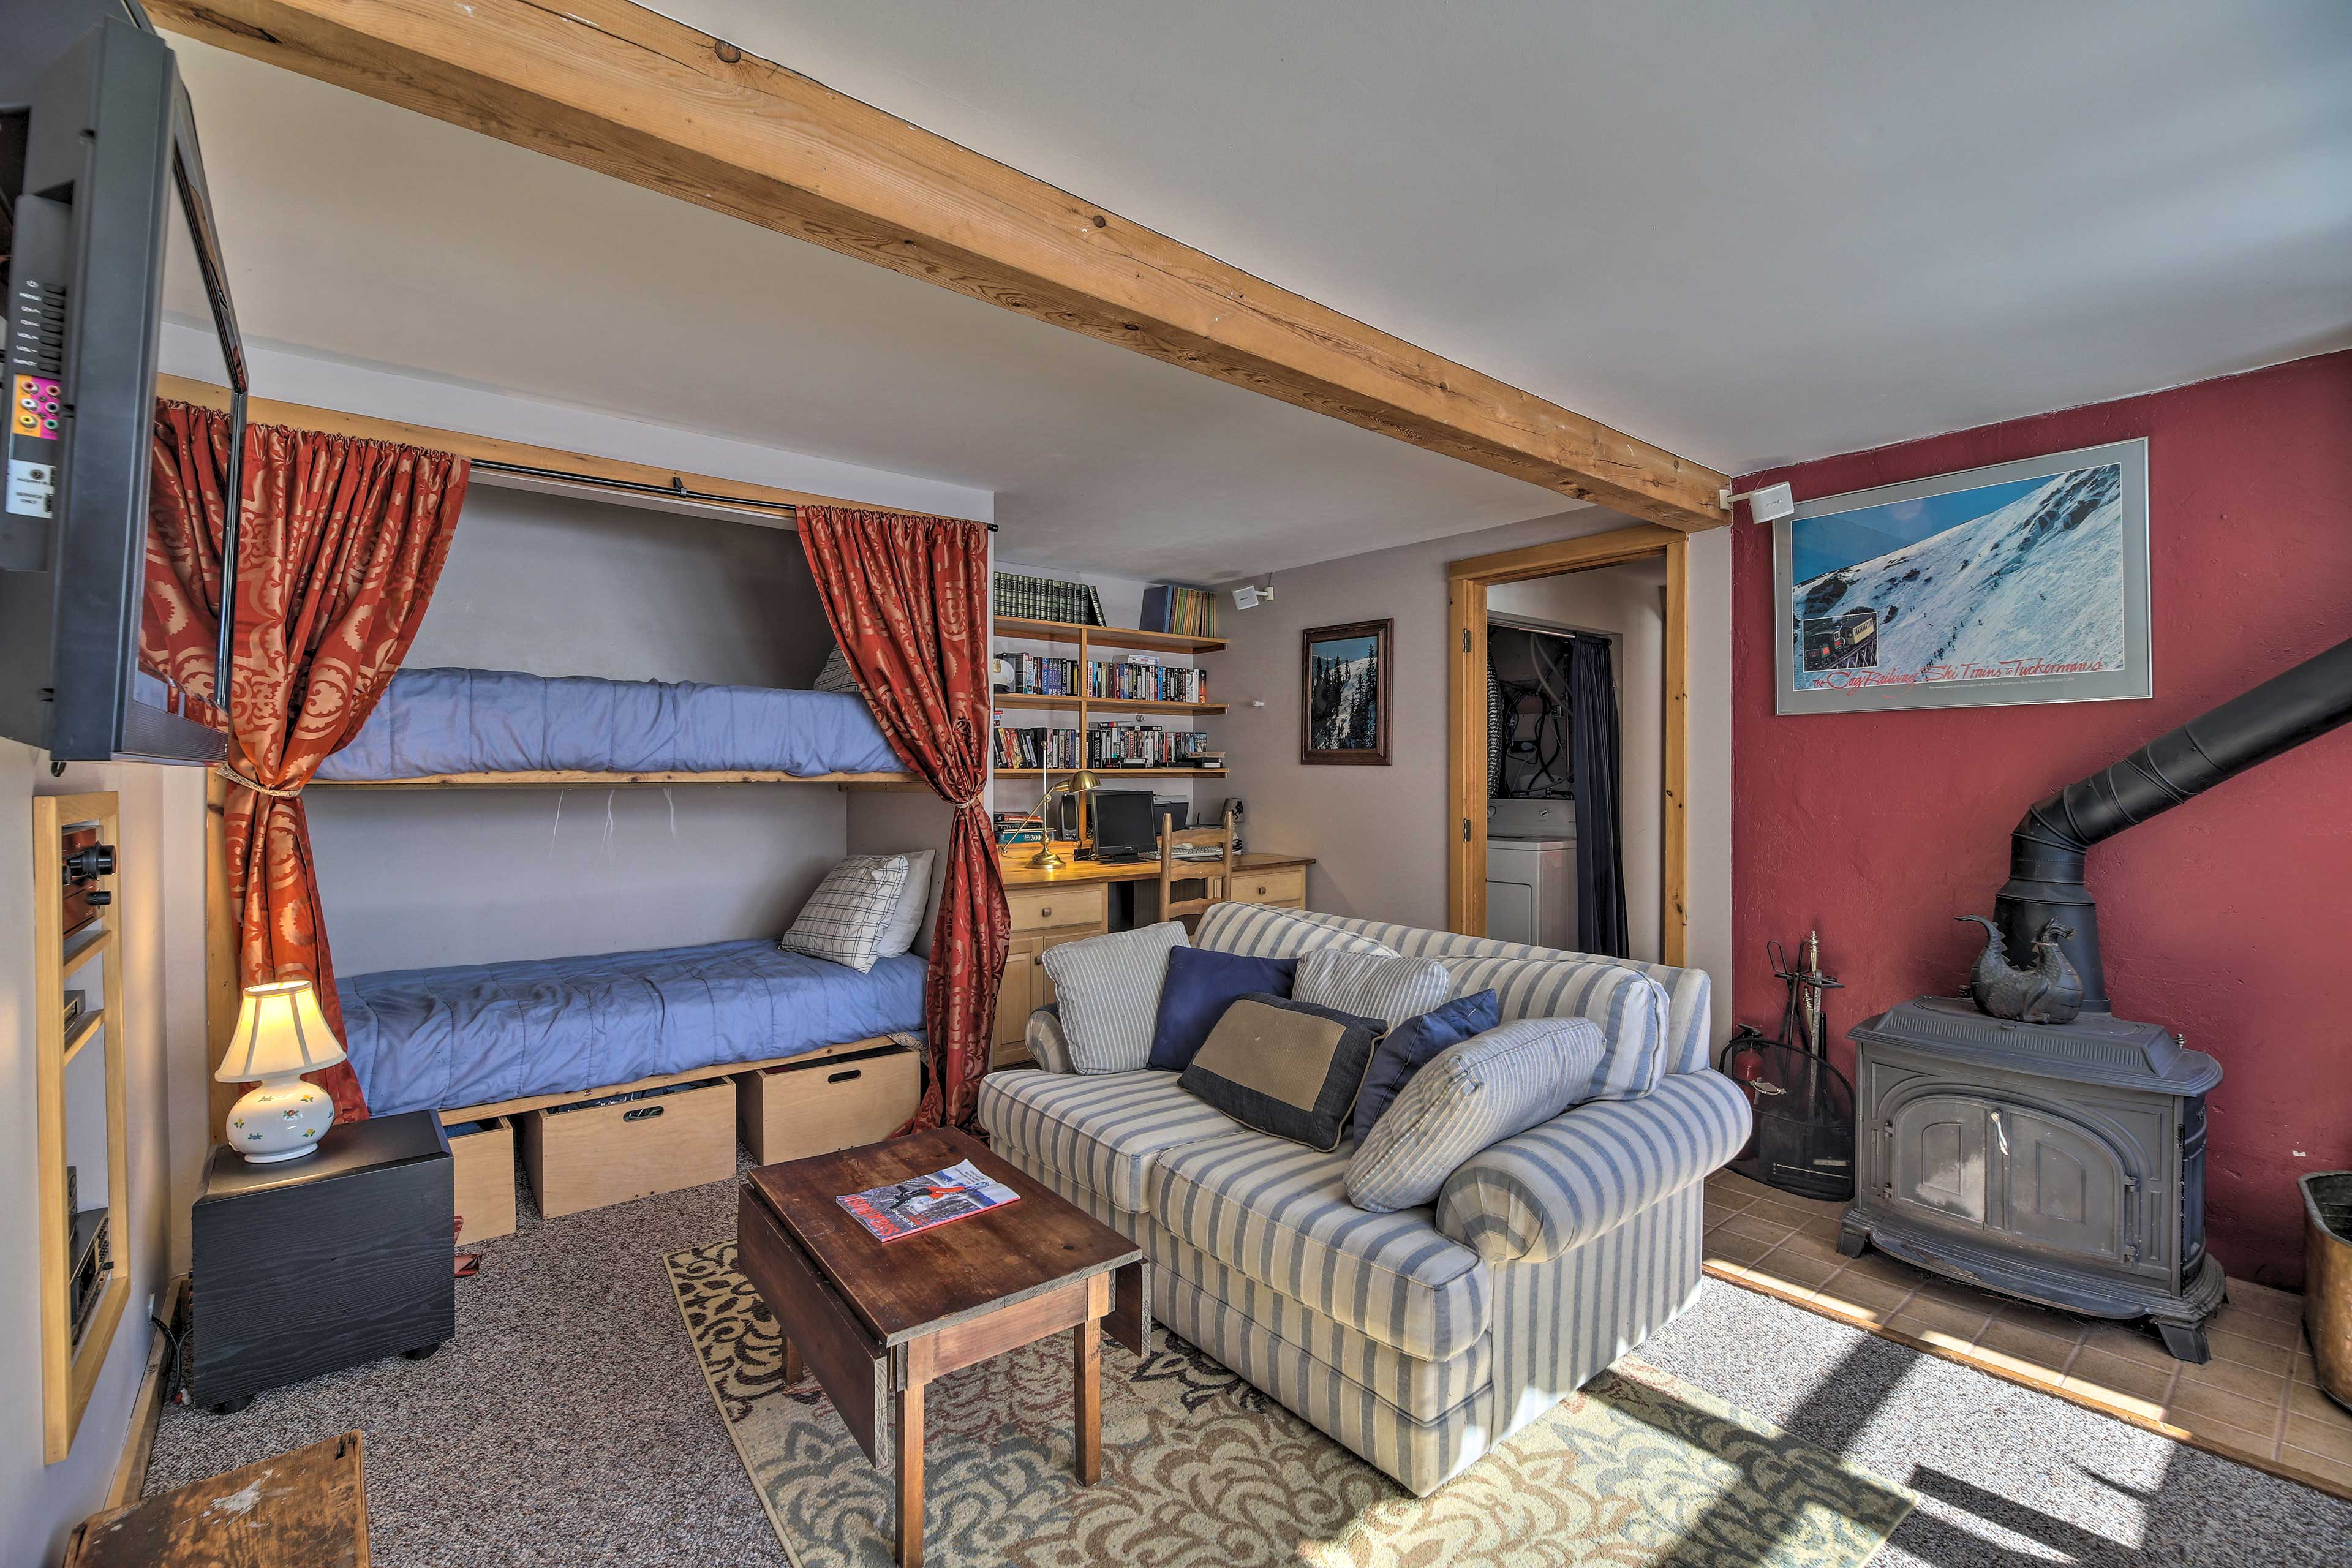 A twin bunk bed and desk area complete the room.